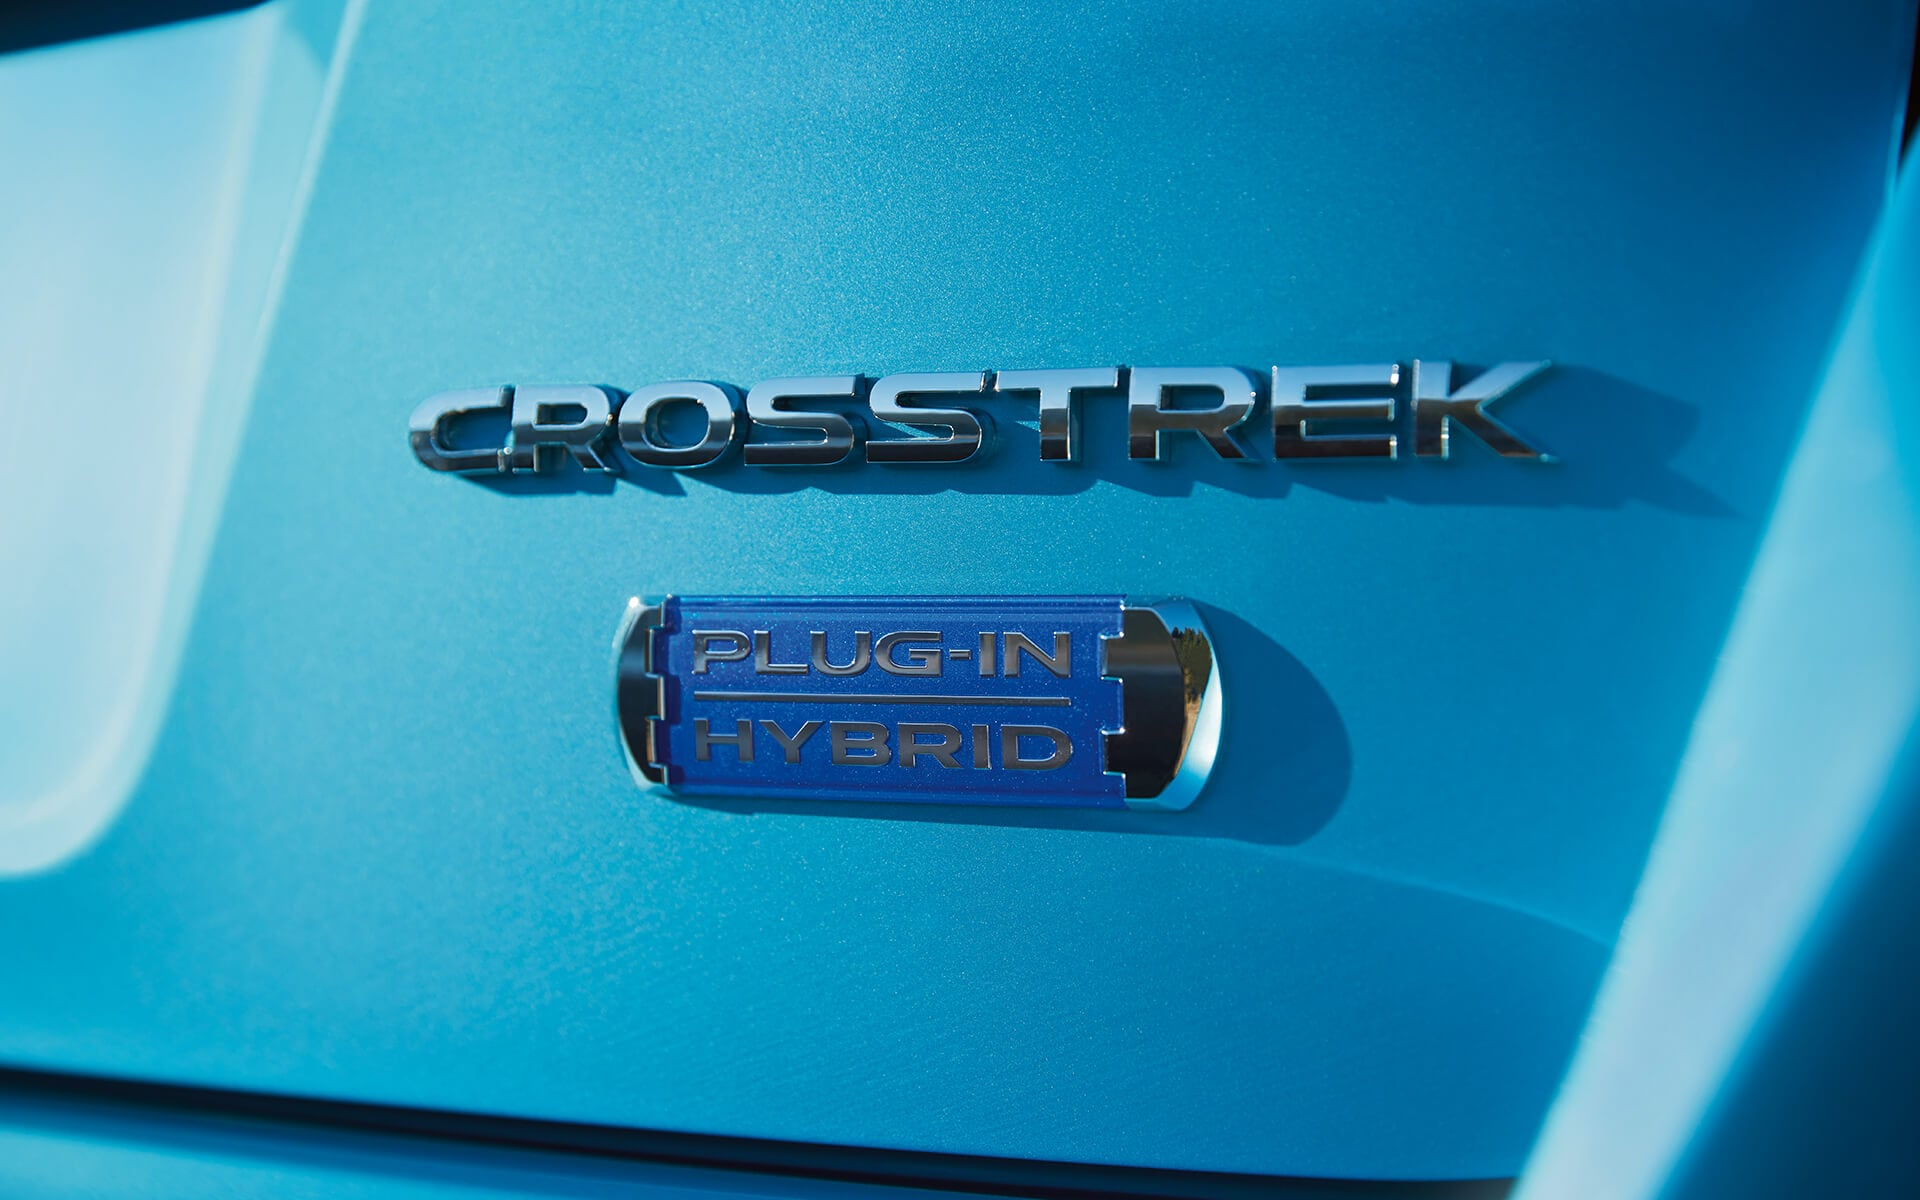 A close-up of the Plug-In Hybrid badge on the 2020 Crosstrek Hybrid.